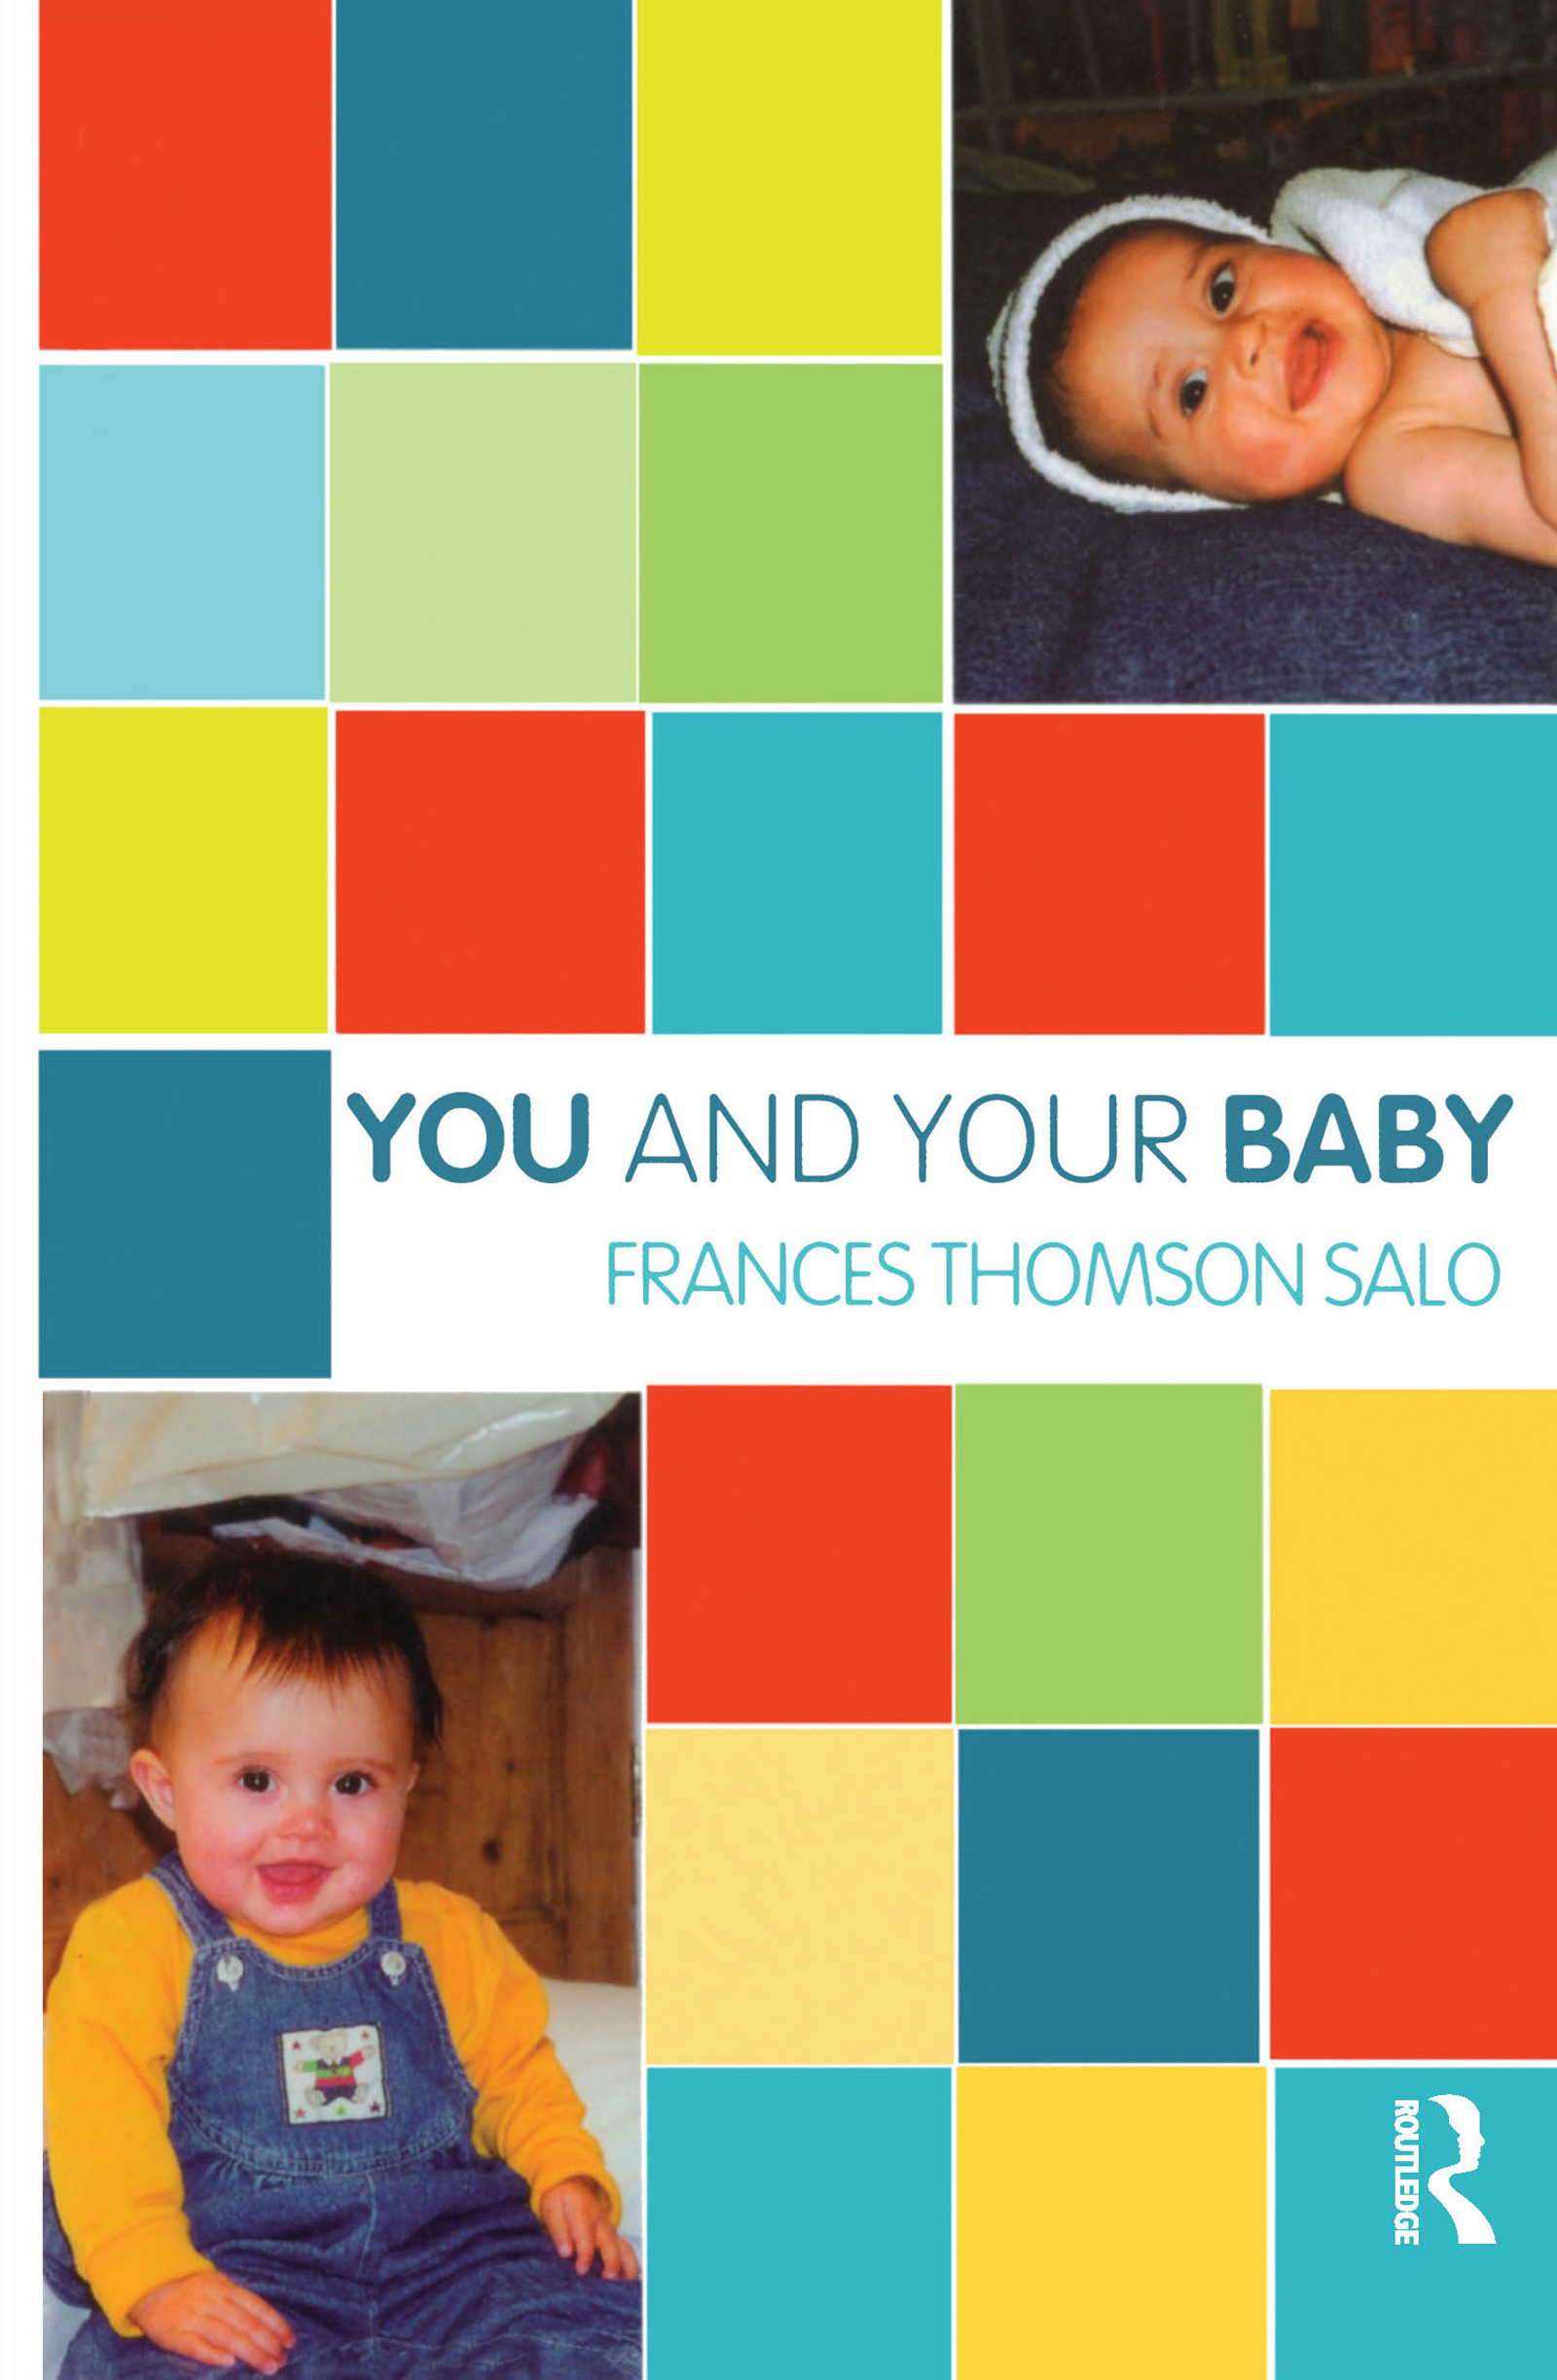 You and Your Baby book cover